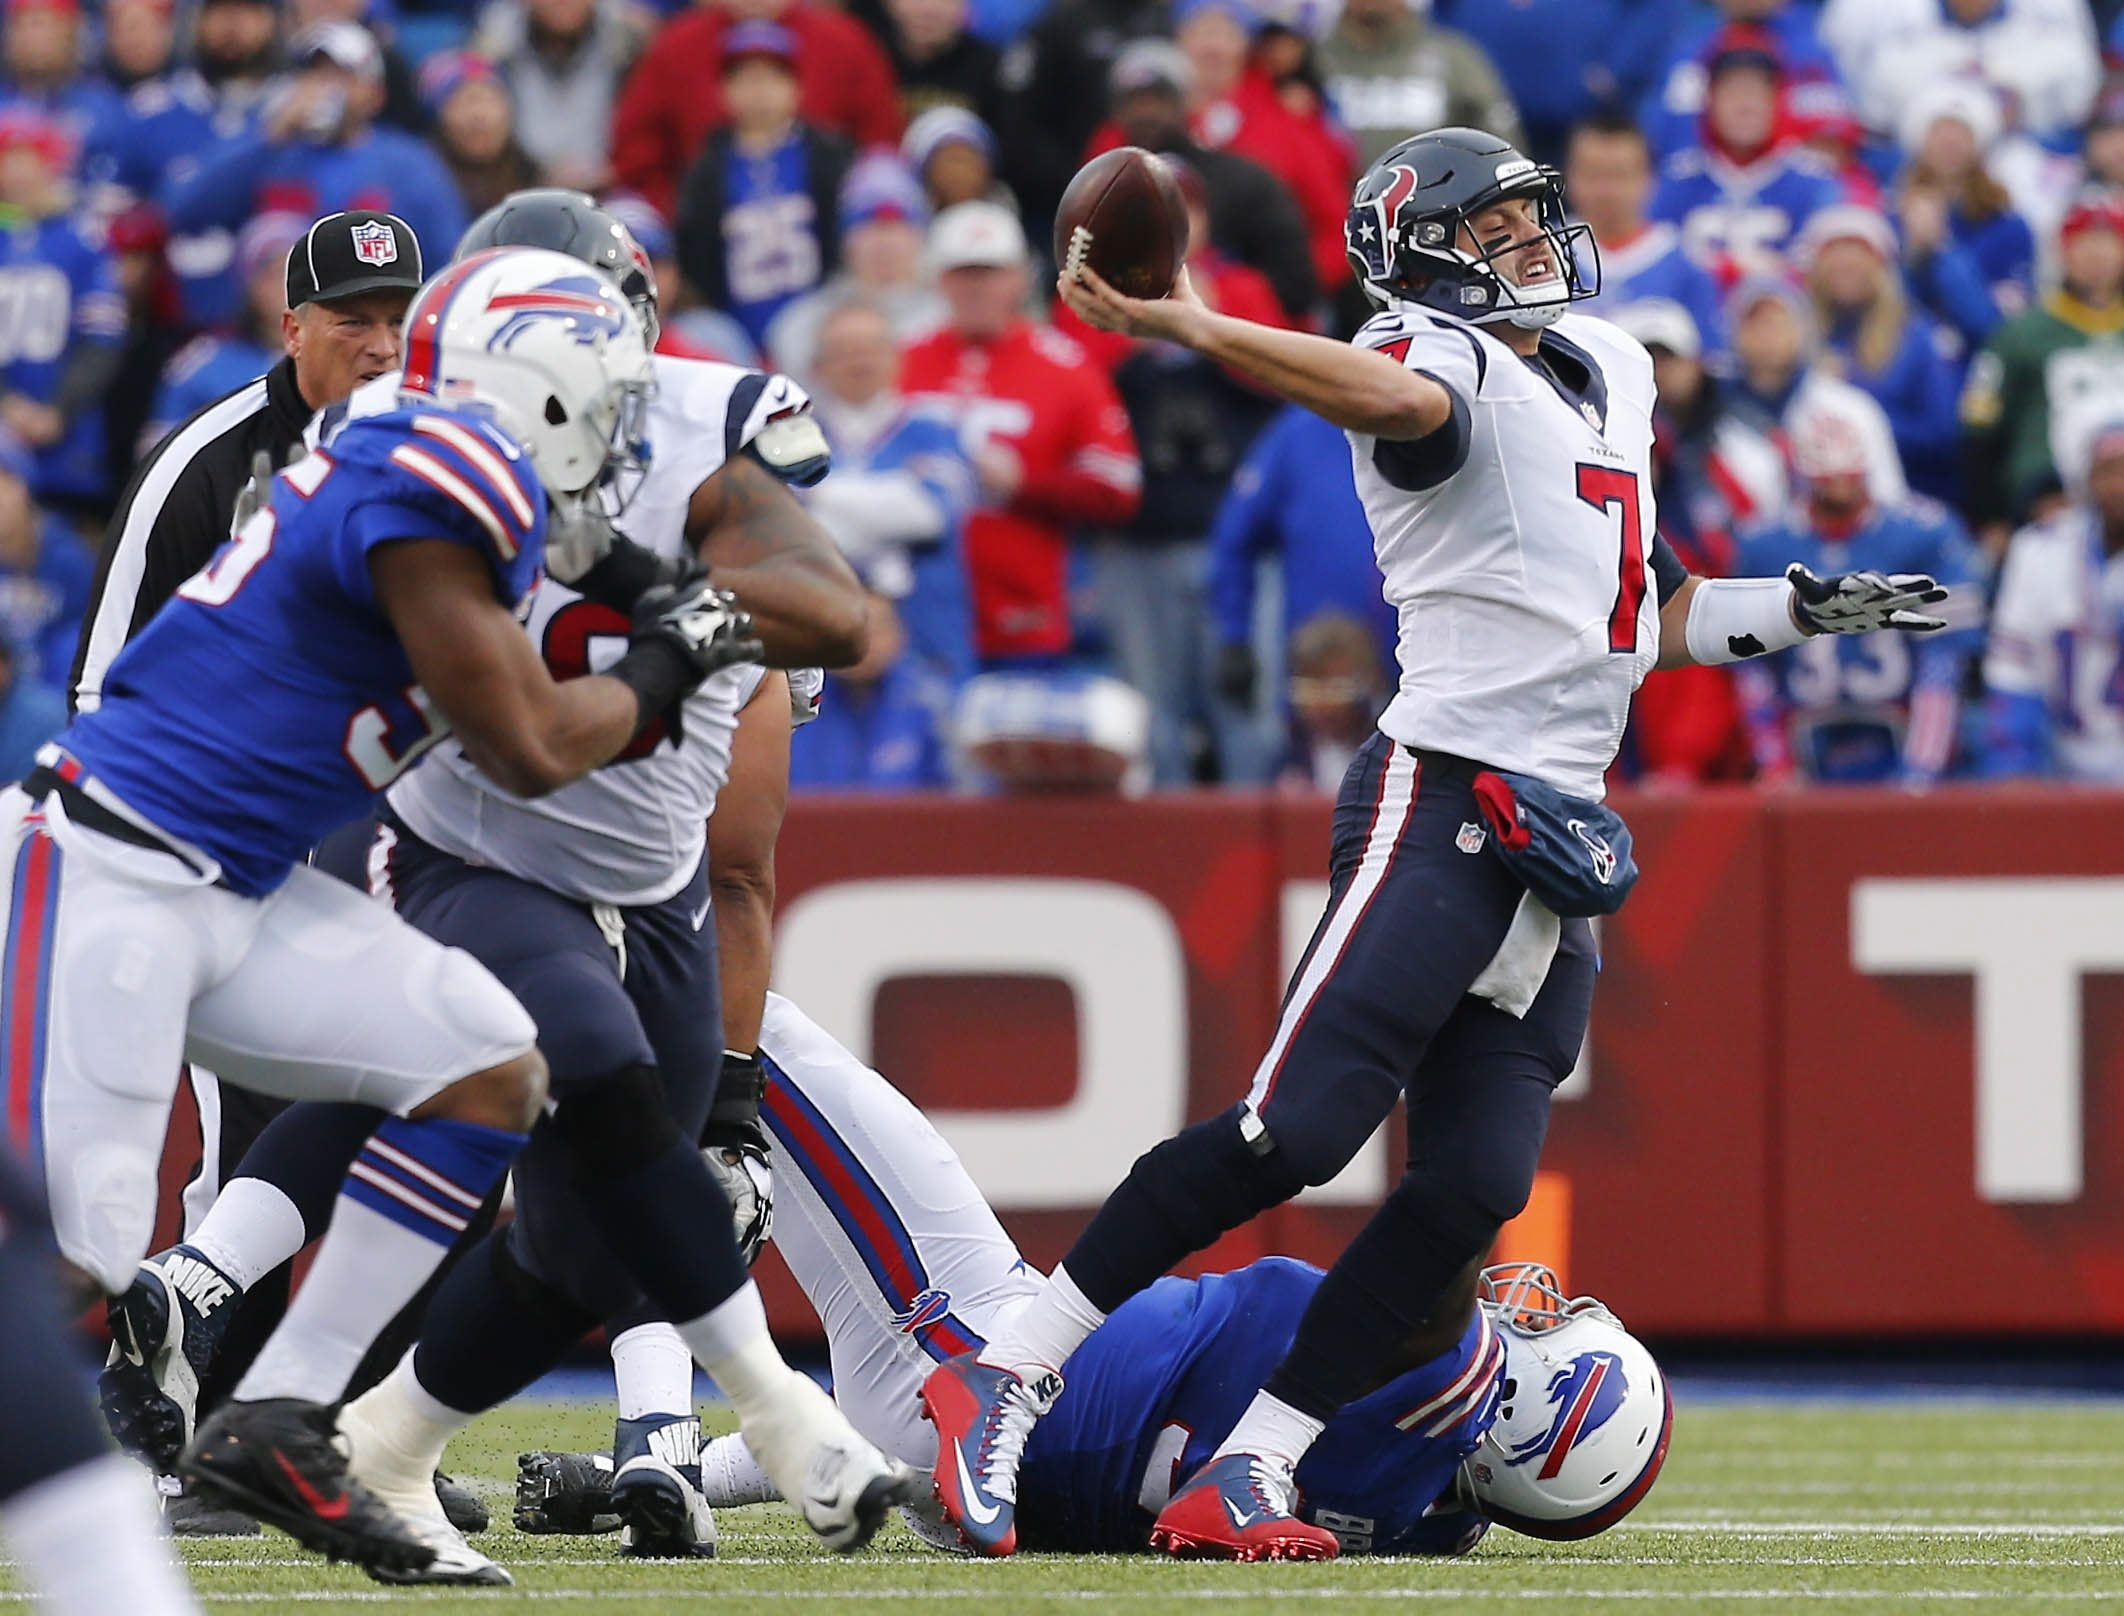 The Bills fully understood they could not allow Texans quarterback Brian Hoyer to beat them. Hoyer threw 43 times for 293 yards, three touchdowns and one interception.